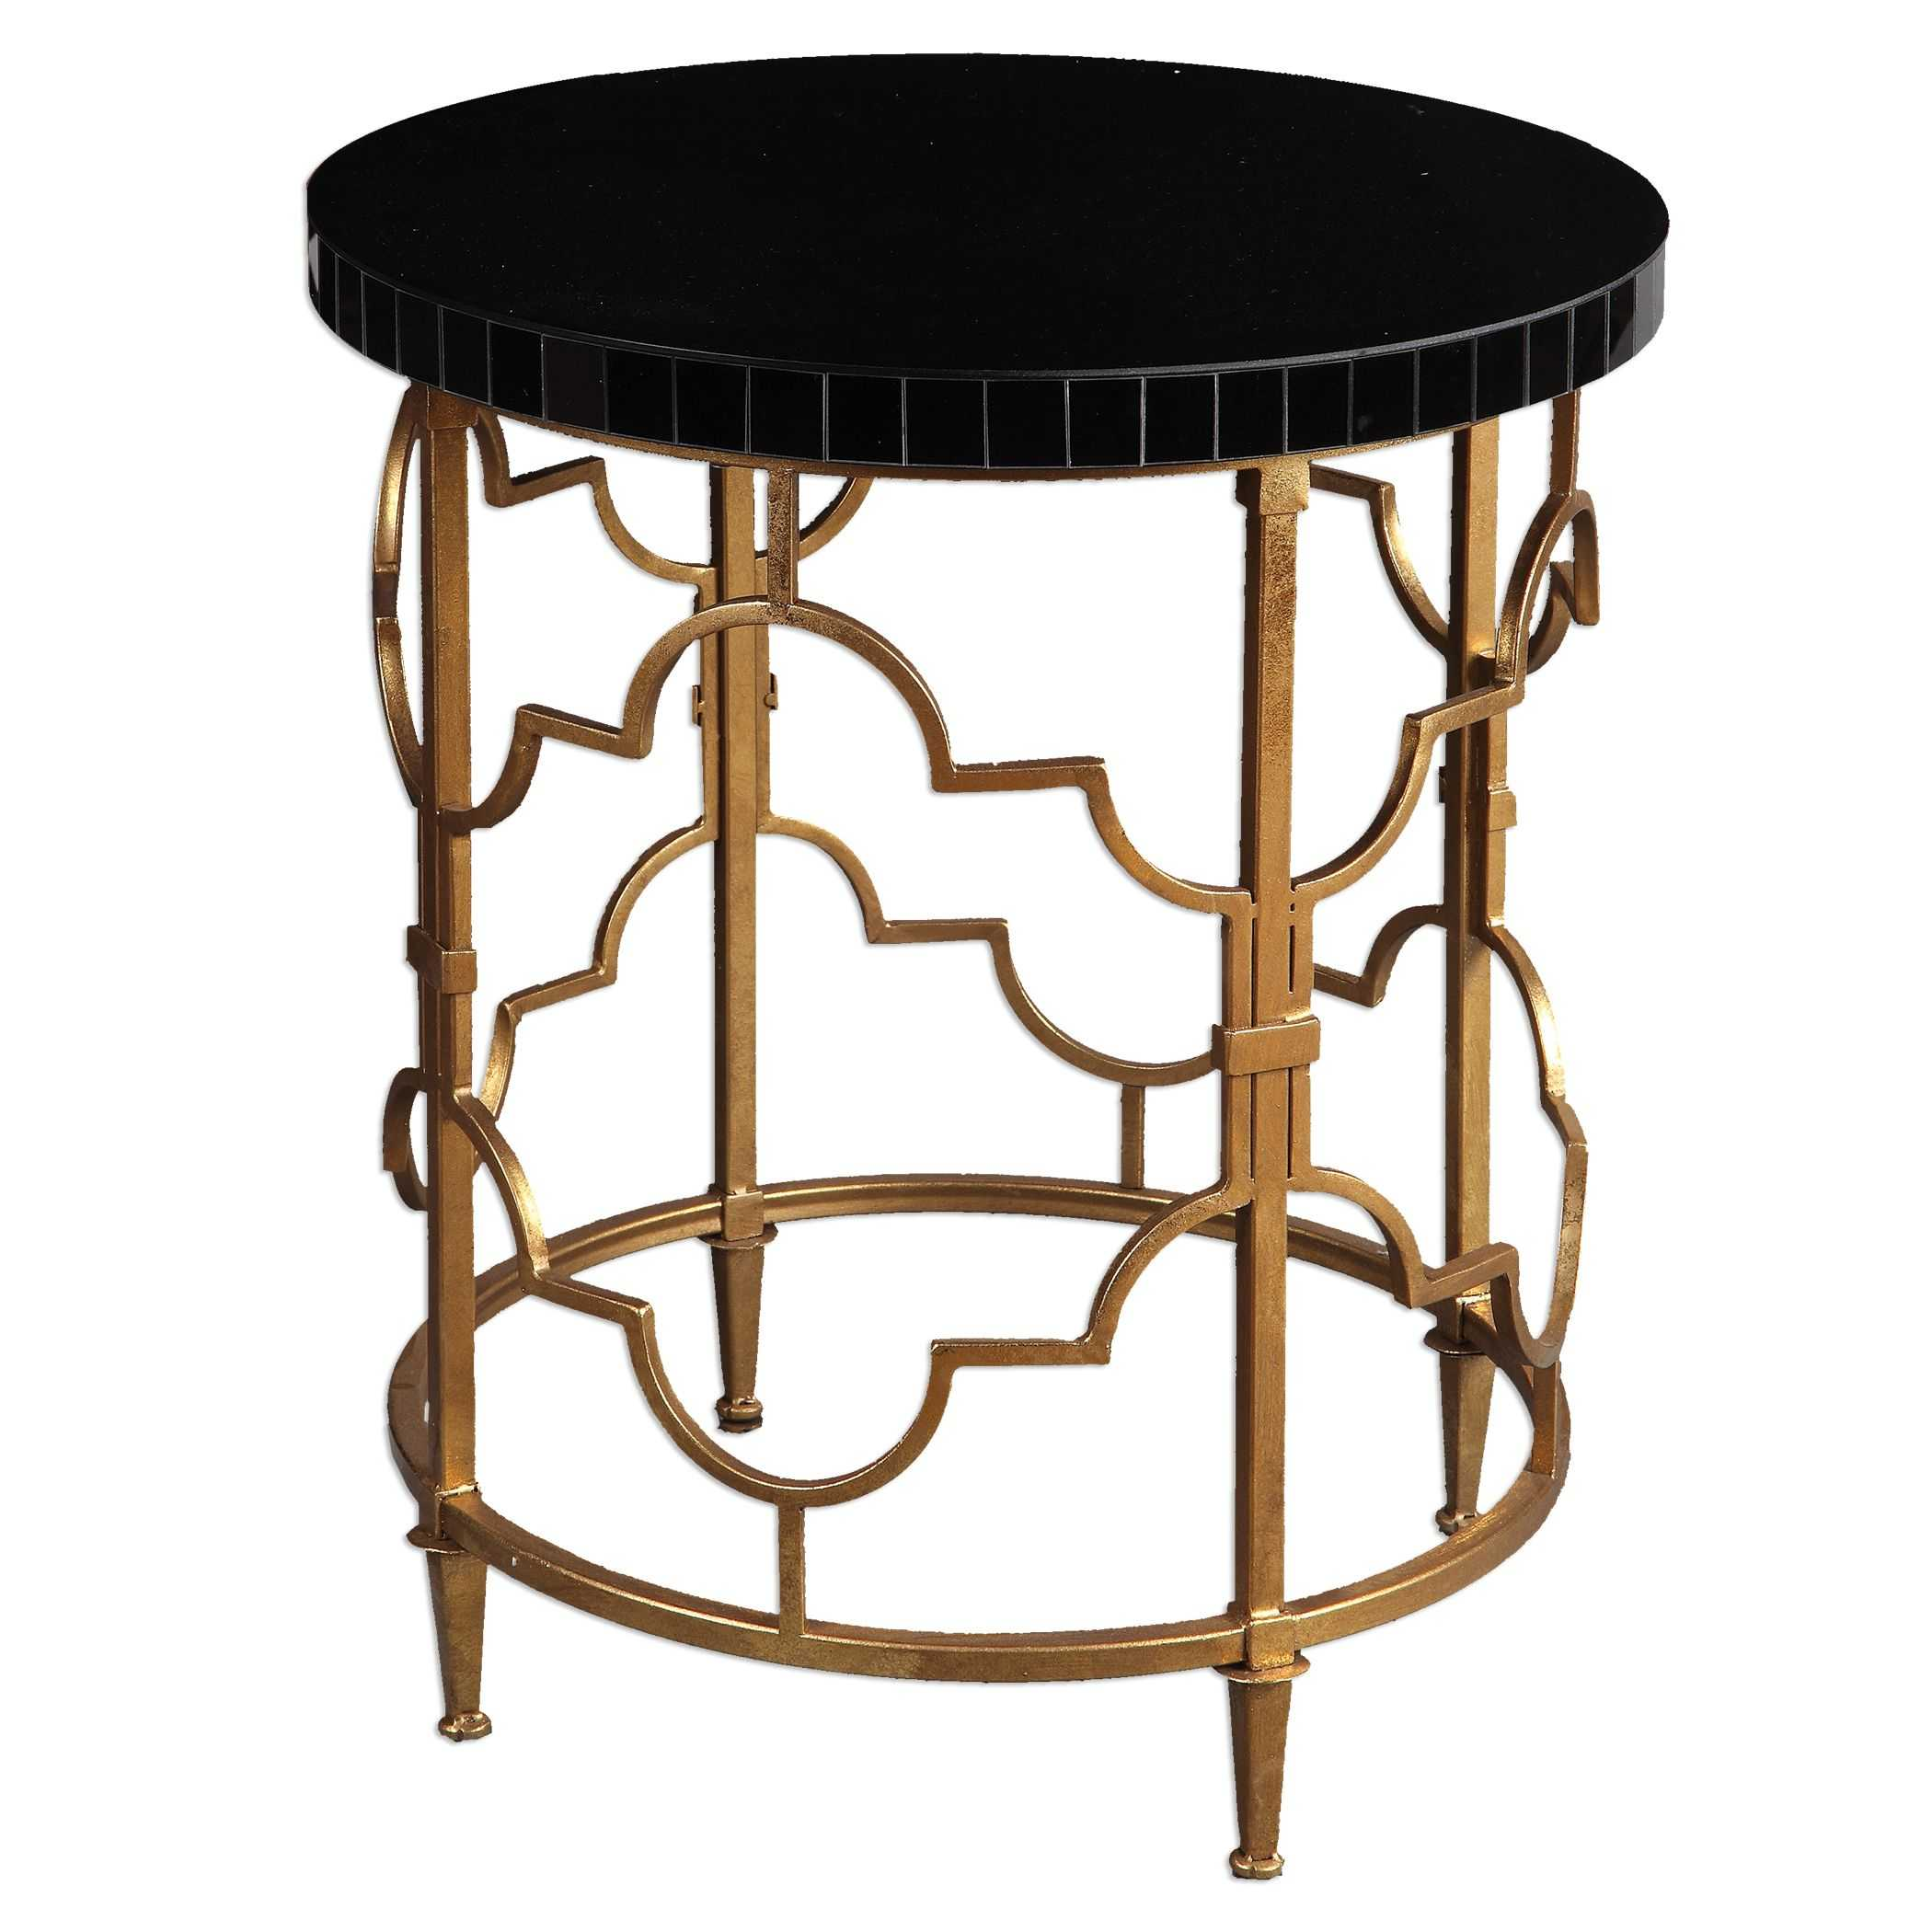 furniture gold brass accent tables loving lately bombay uttermost mosi black table hourglass west elm round patio bar clearance cool lamps ethan allen dining and chairs pier